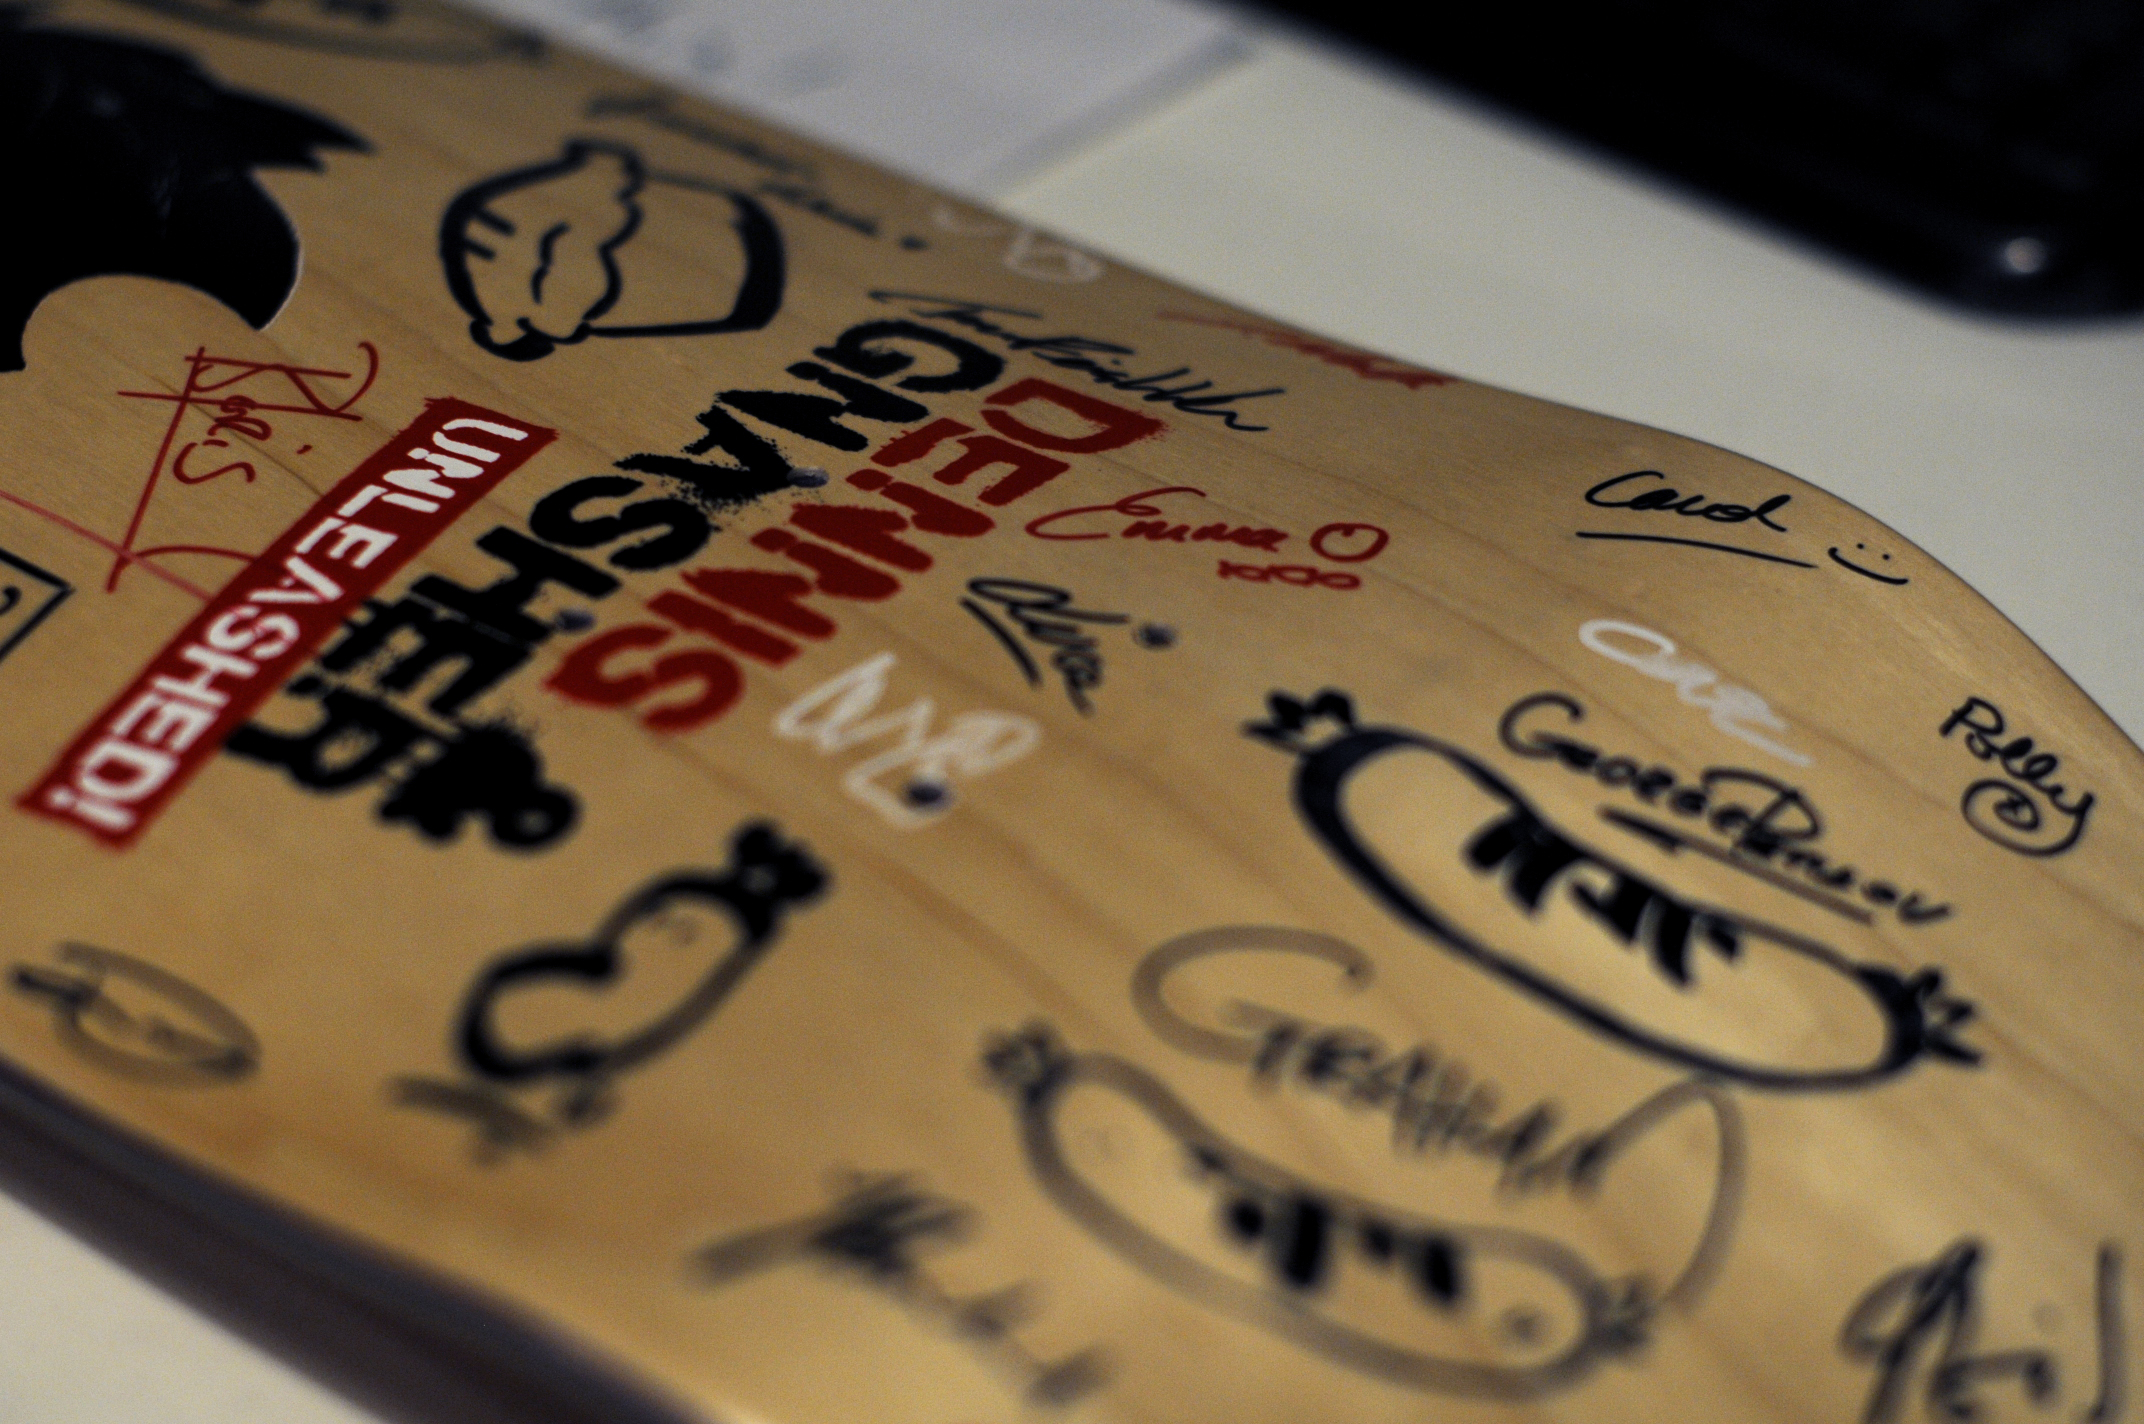 jellyfish skate deck signed